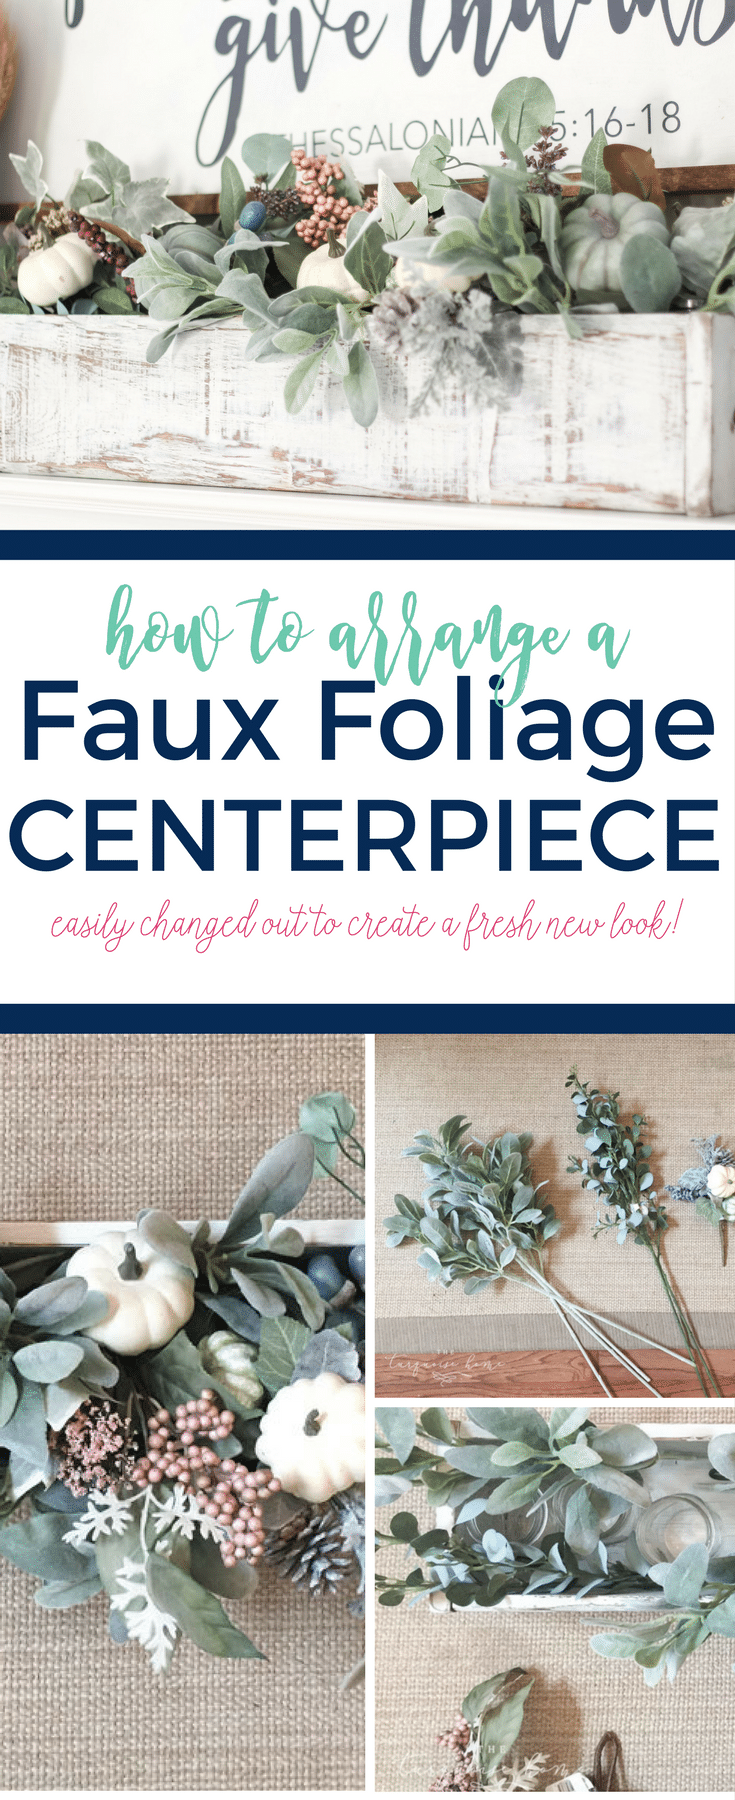 How to Arrange a Faux Foliage Centerpiece in a Wooden Box - so cute!!